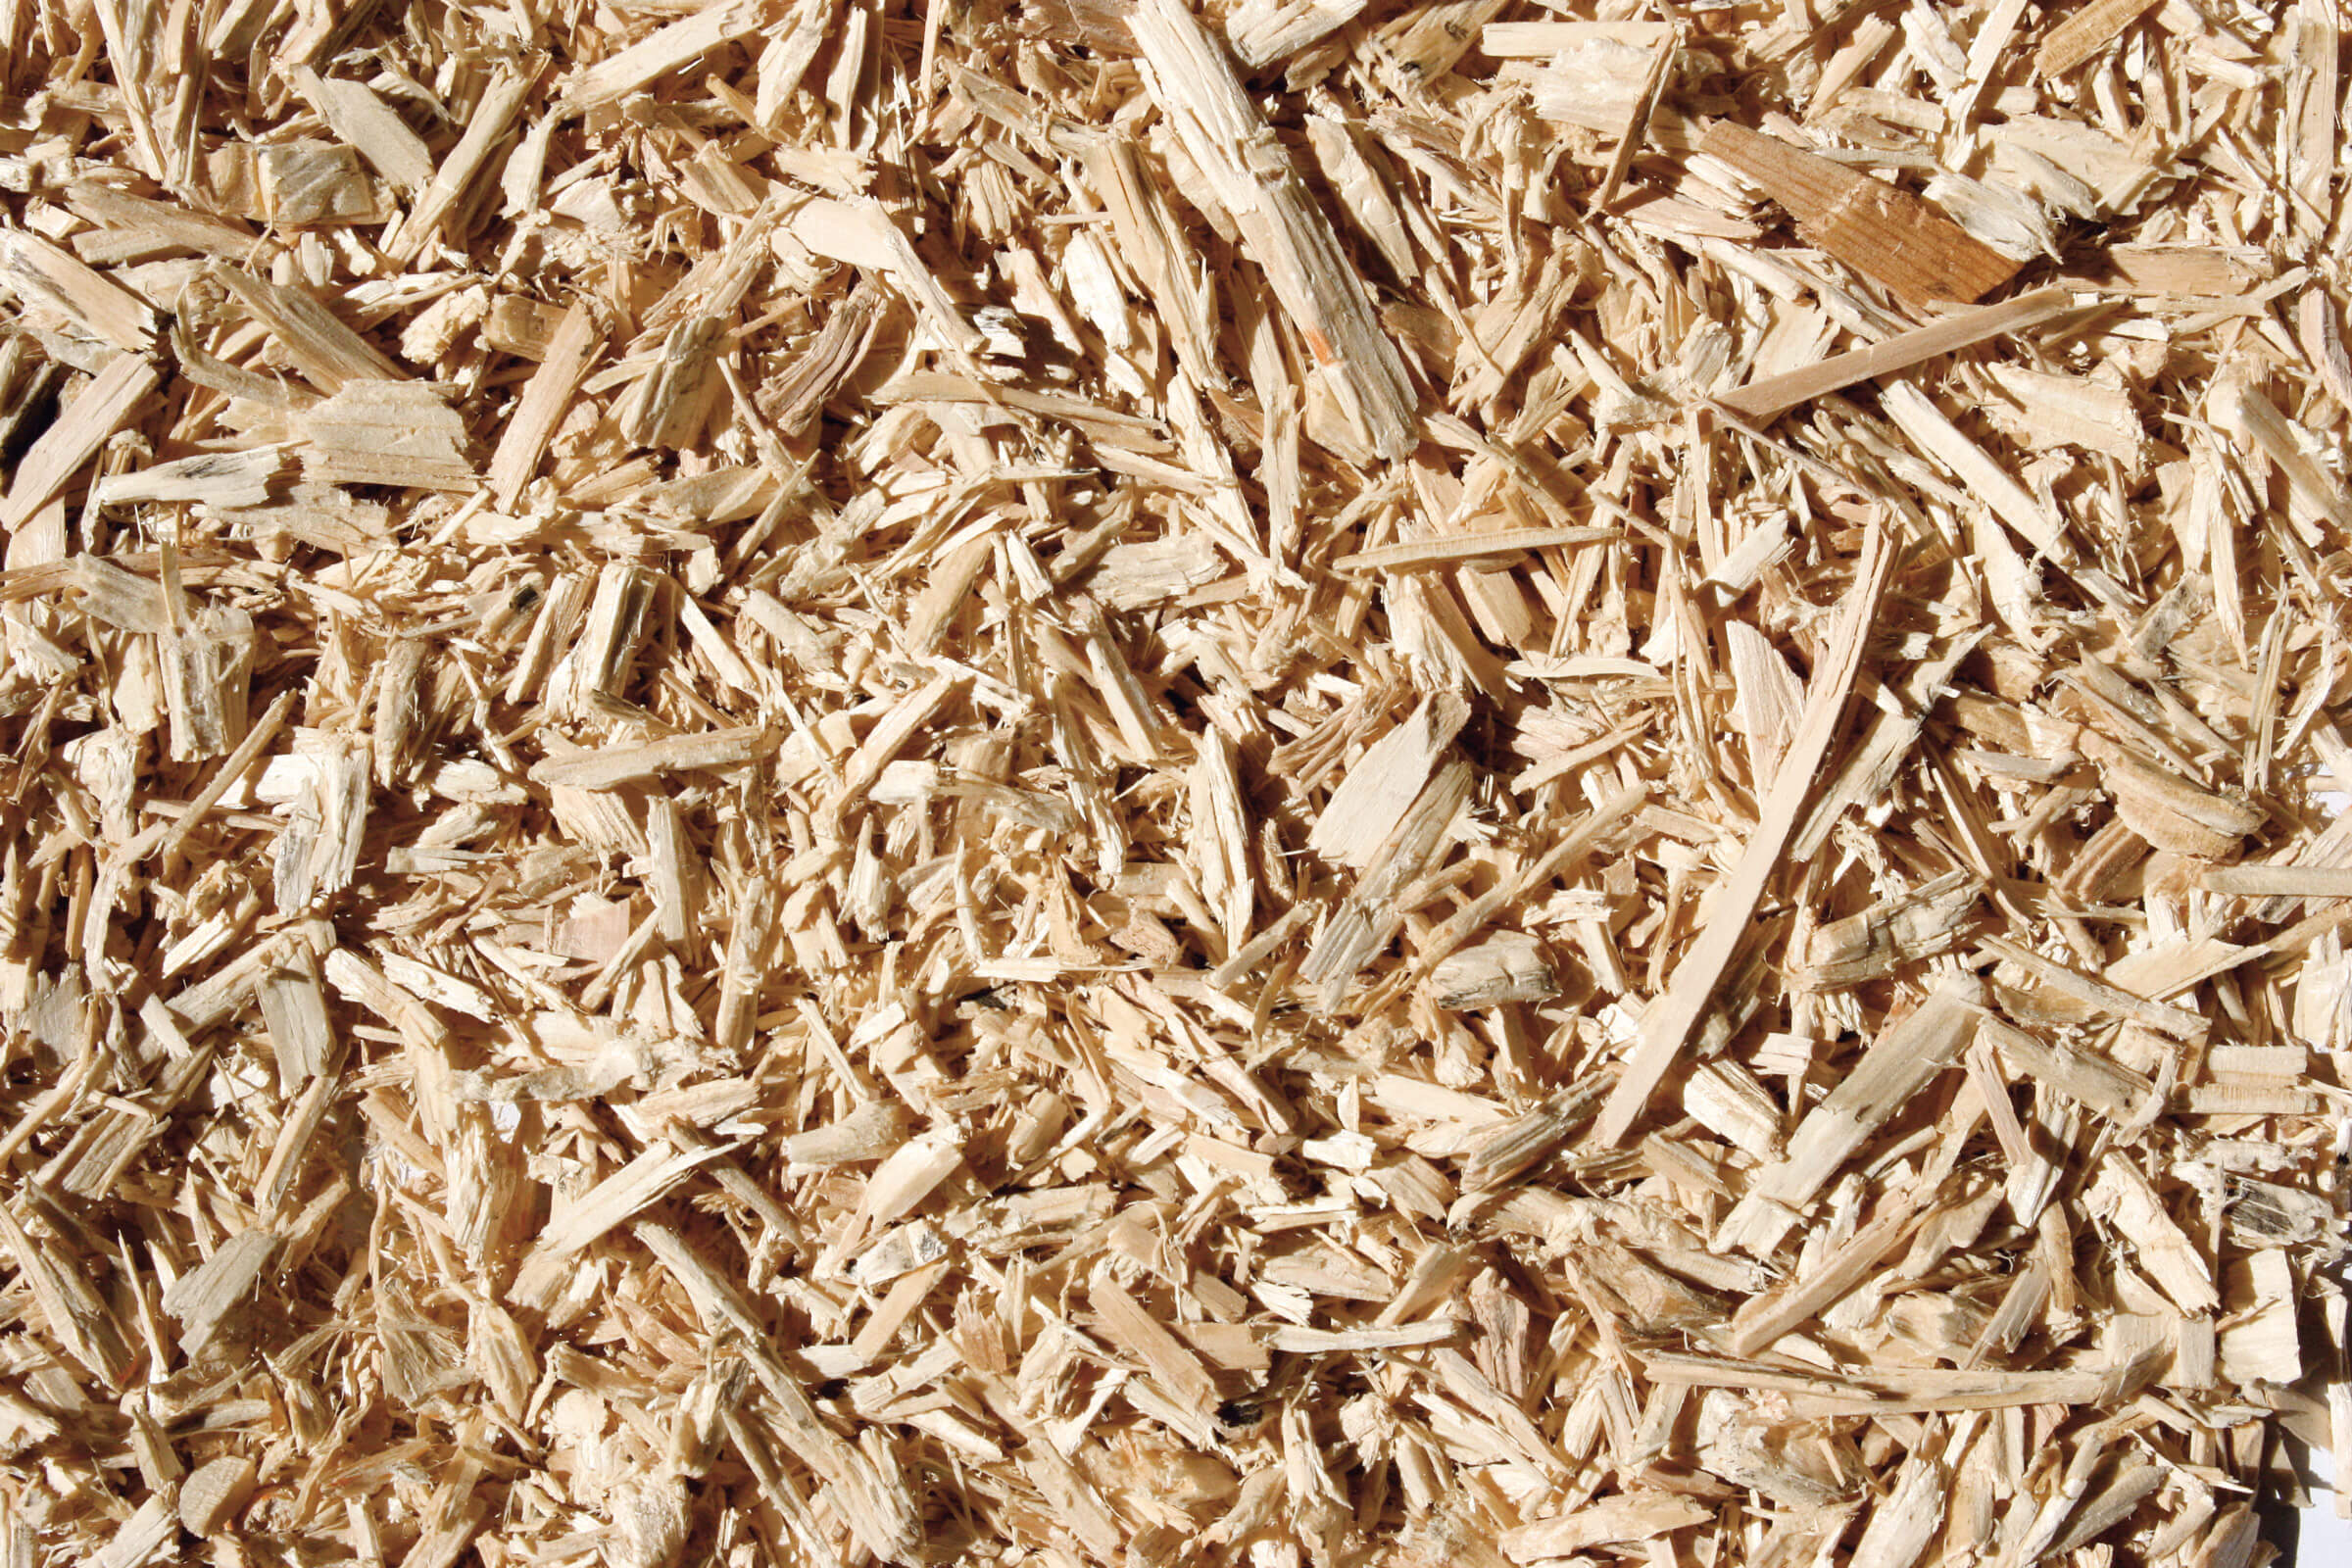 Dried wood chips from pallets